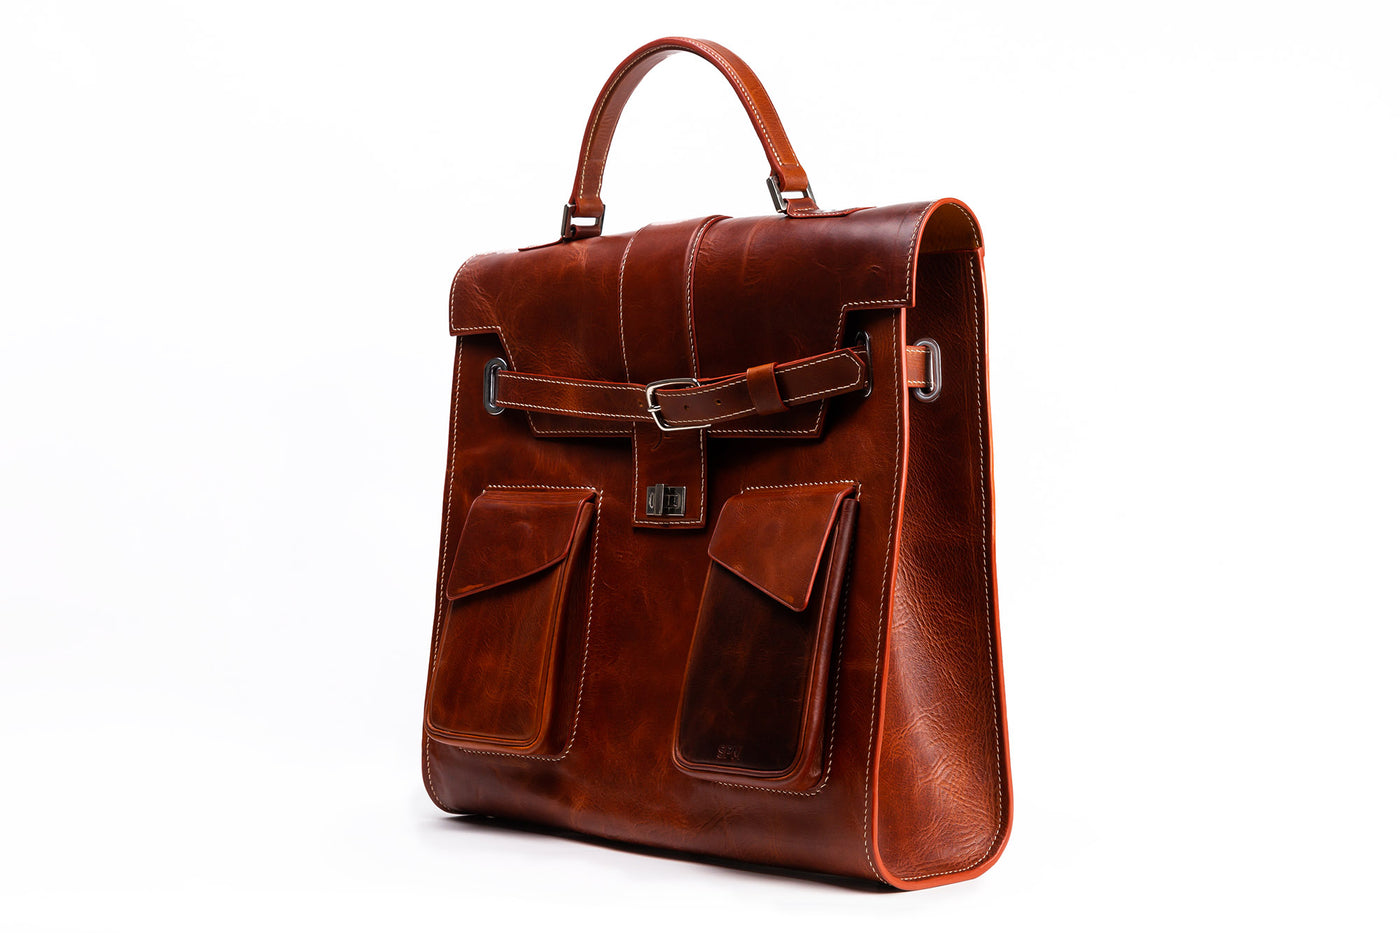 The collection of bespoke leather bags custom made to order